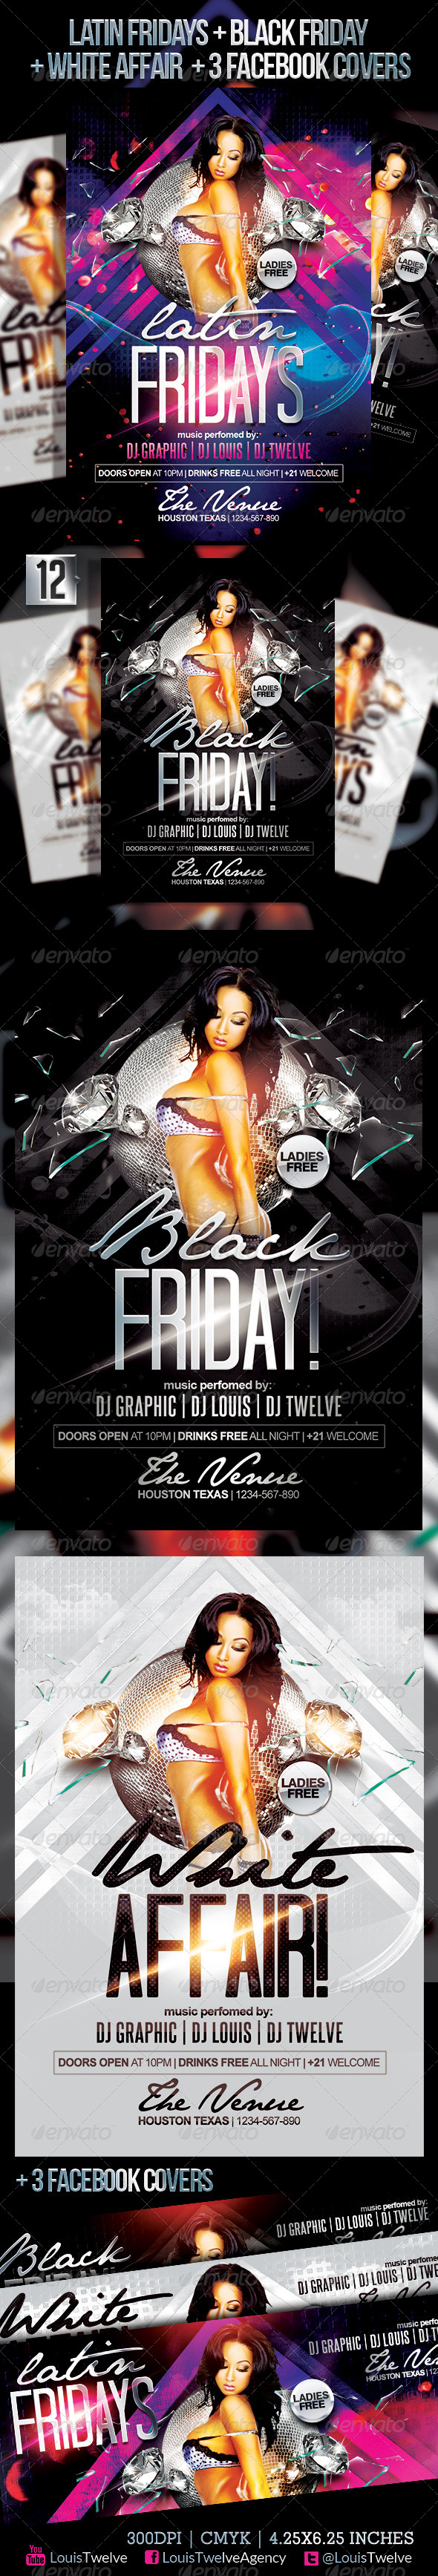 Latin Fridays & White Affair Flyer & FB Covers